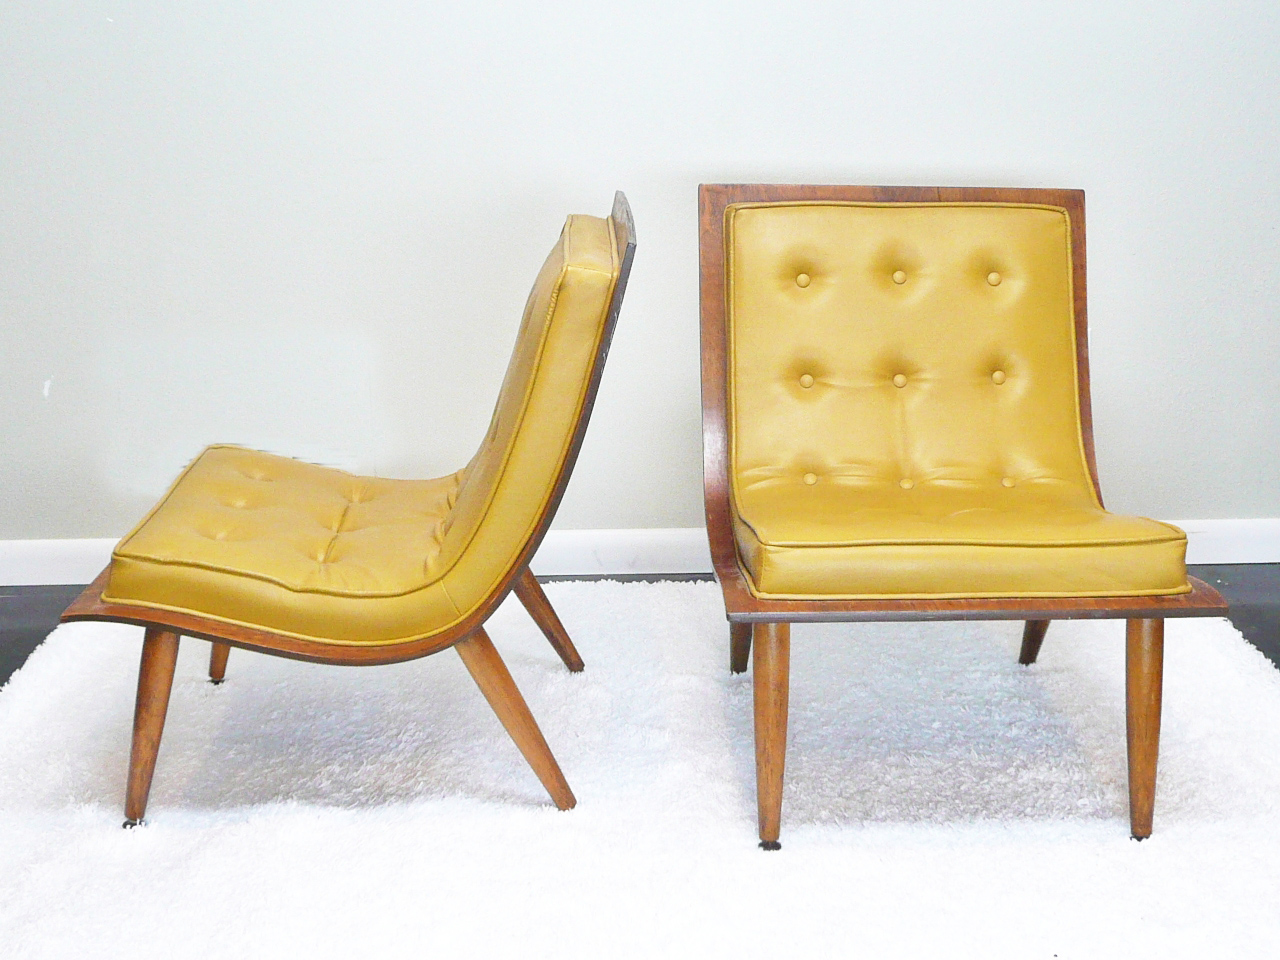 Beau A Fabulous Pair Of 1950u0027s / 60u0027s Danish Modern Style Molded Plywood Lounge  Chairs.